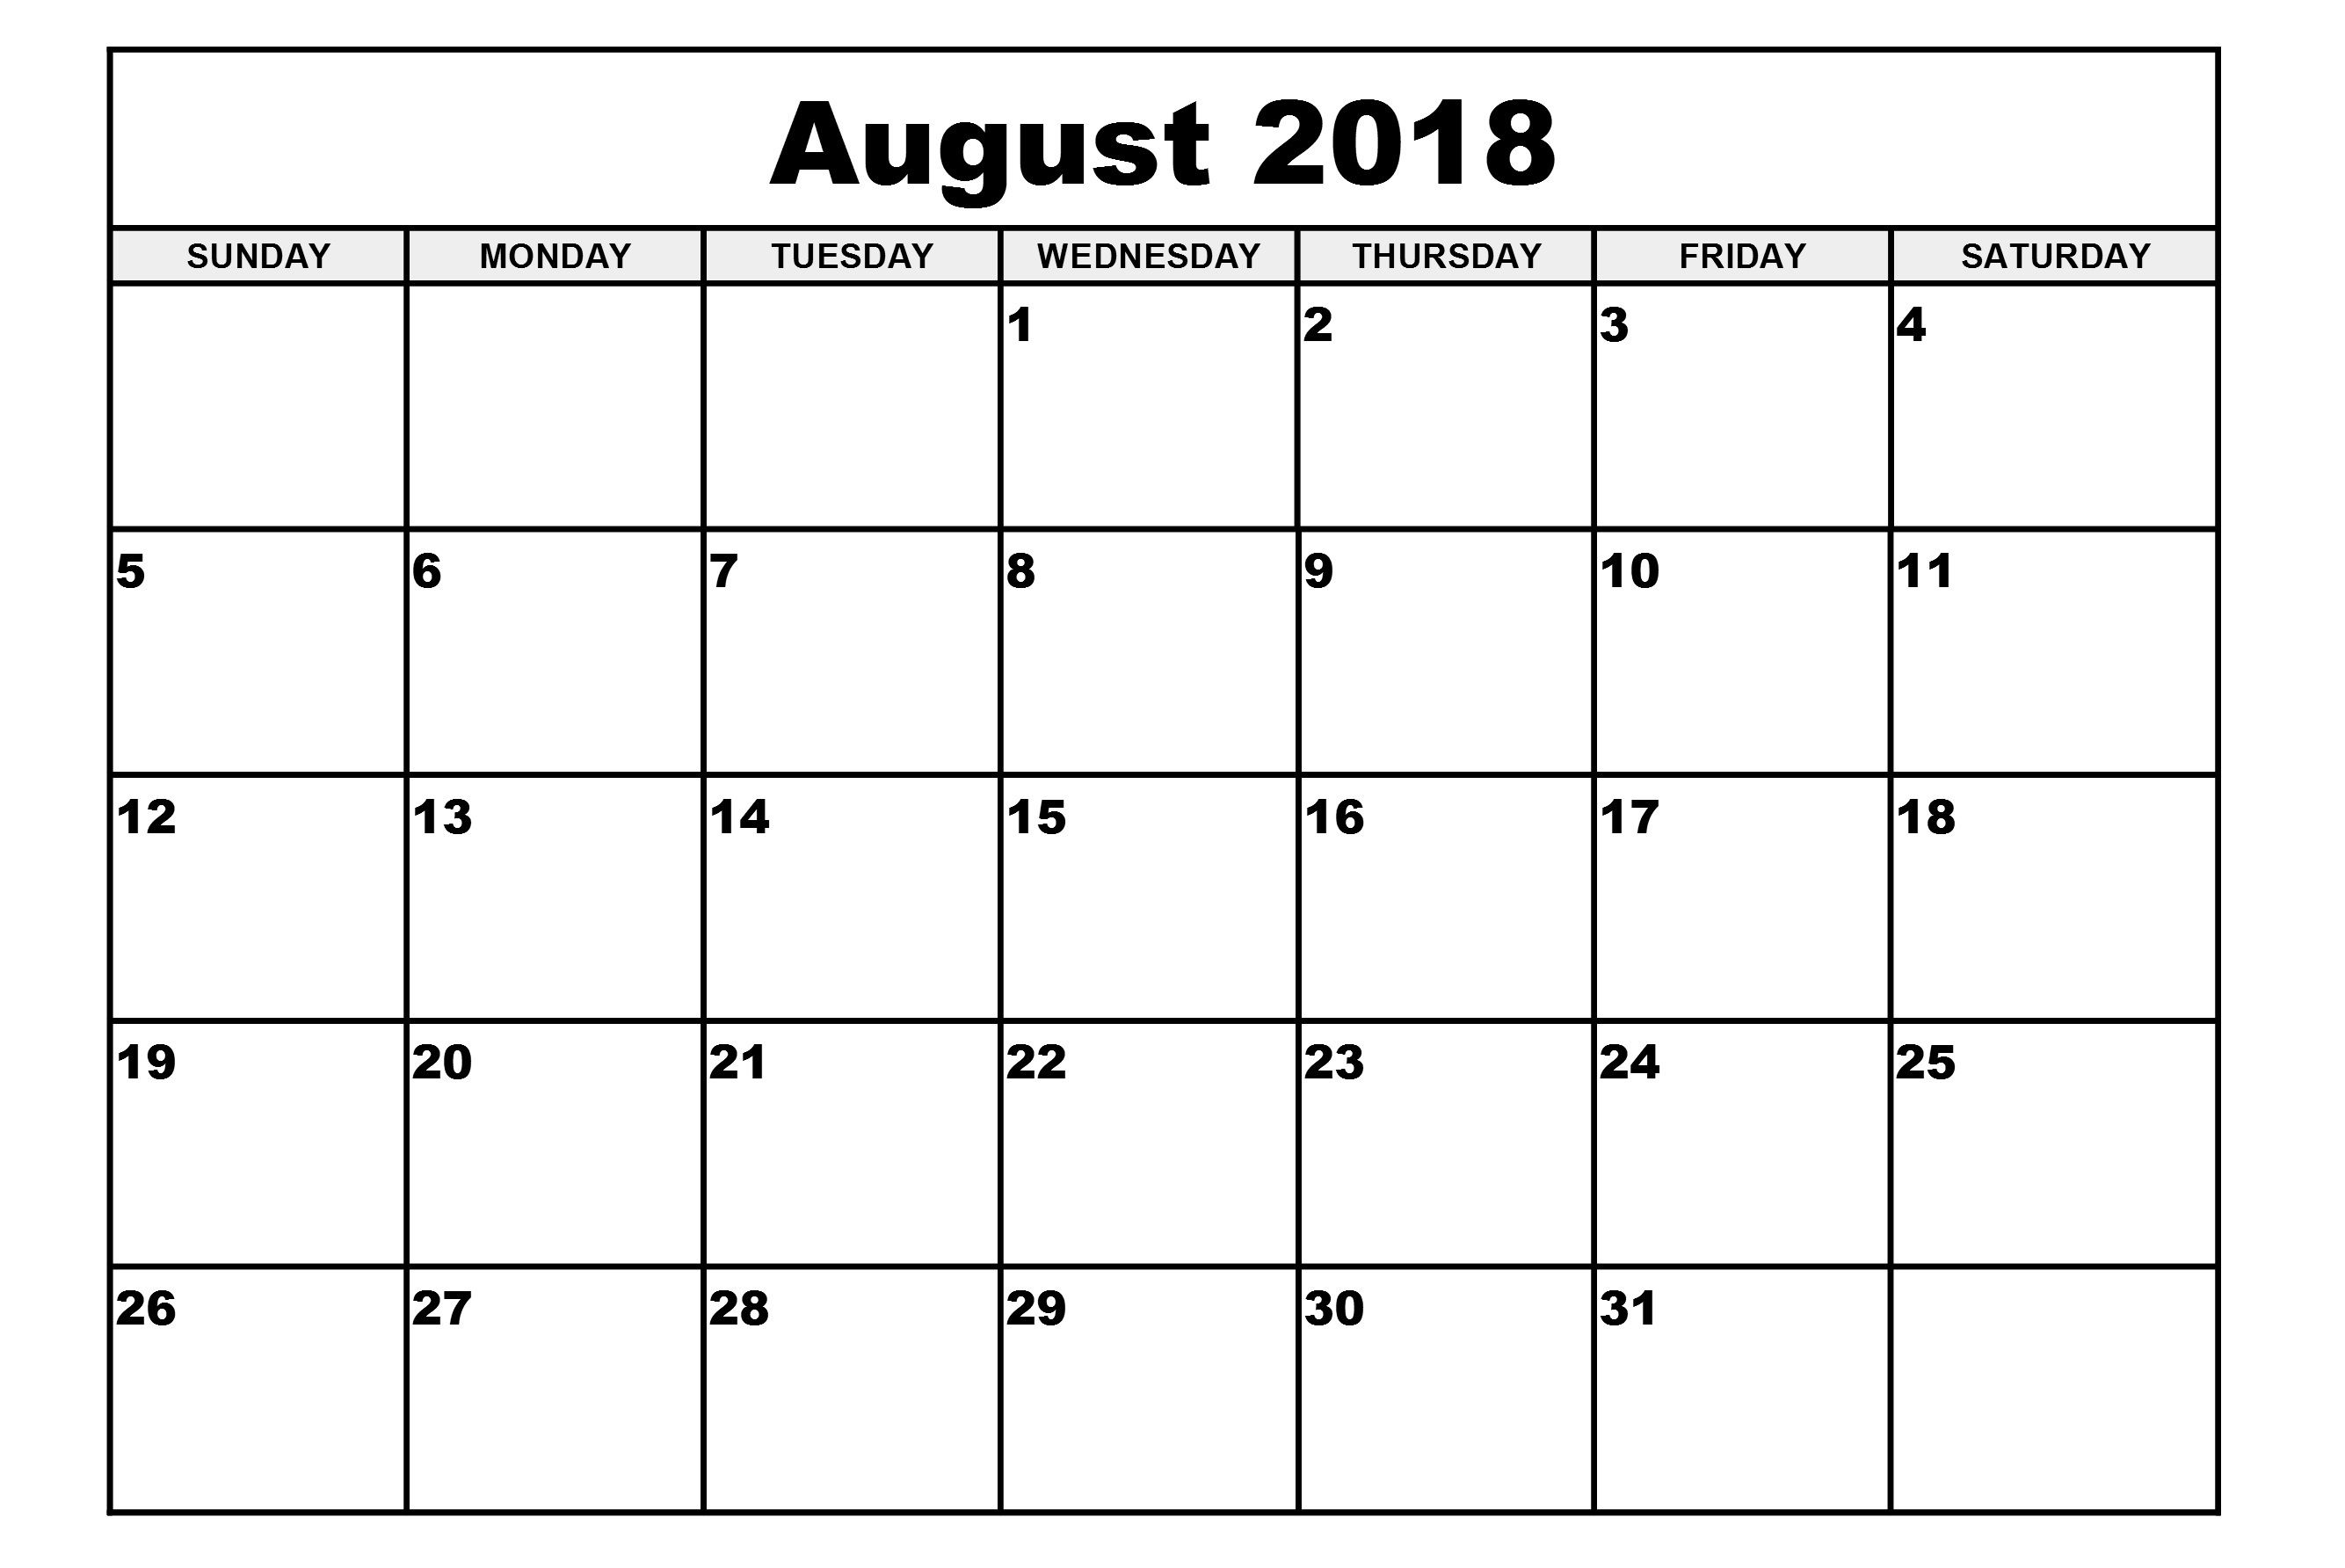 August 2018 Calendar Worksheet August Calendar Free Online Calendar Calendar Template